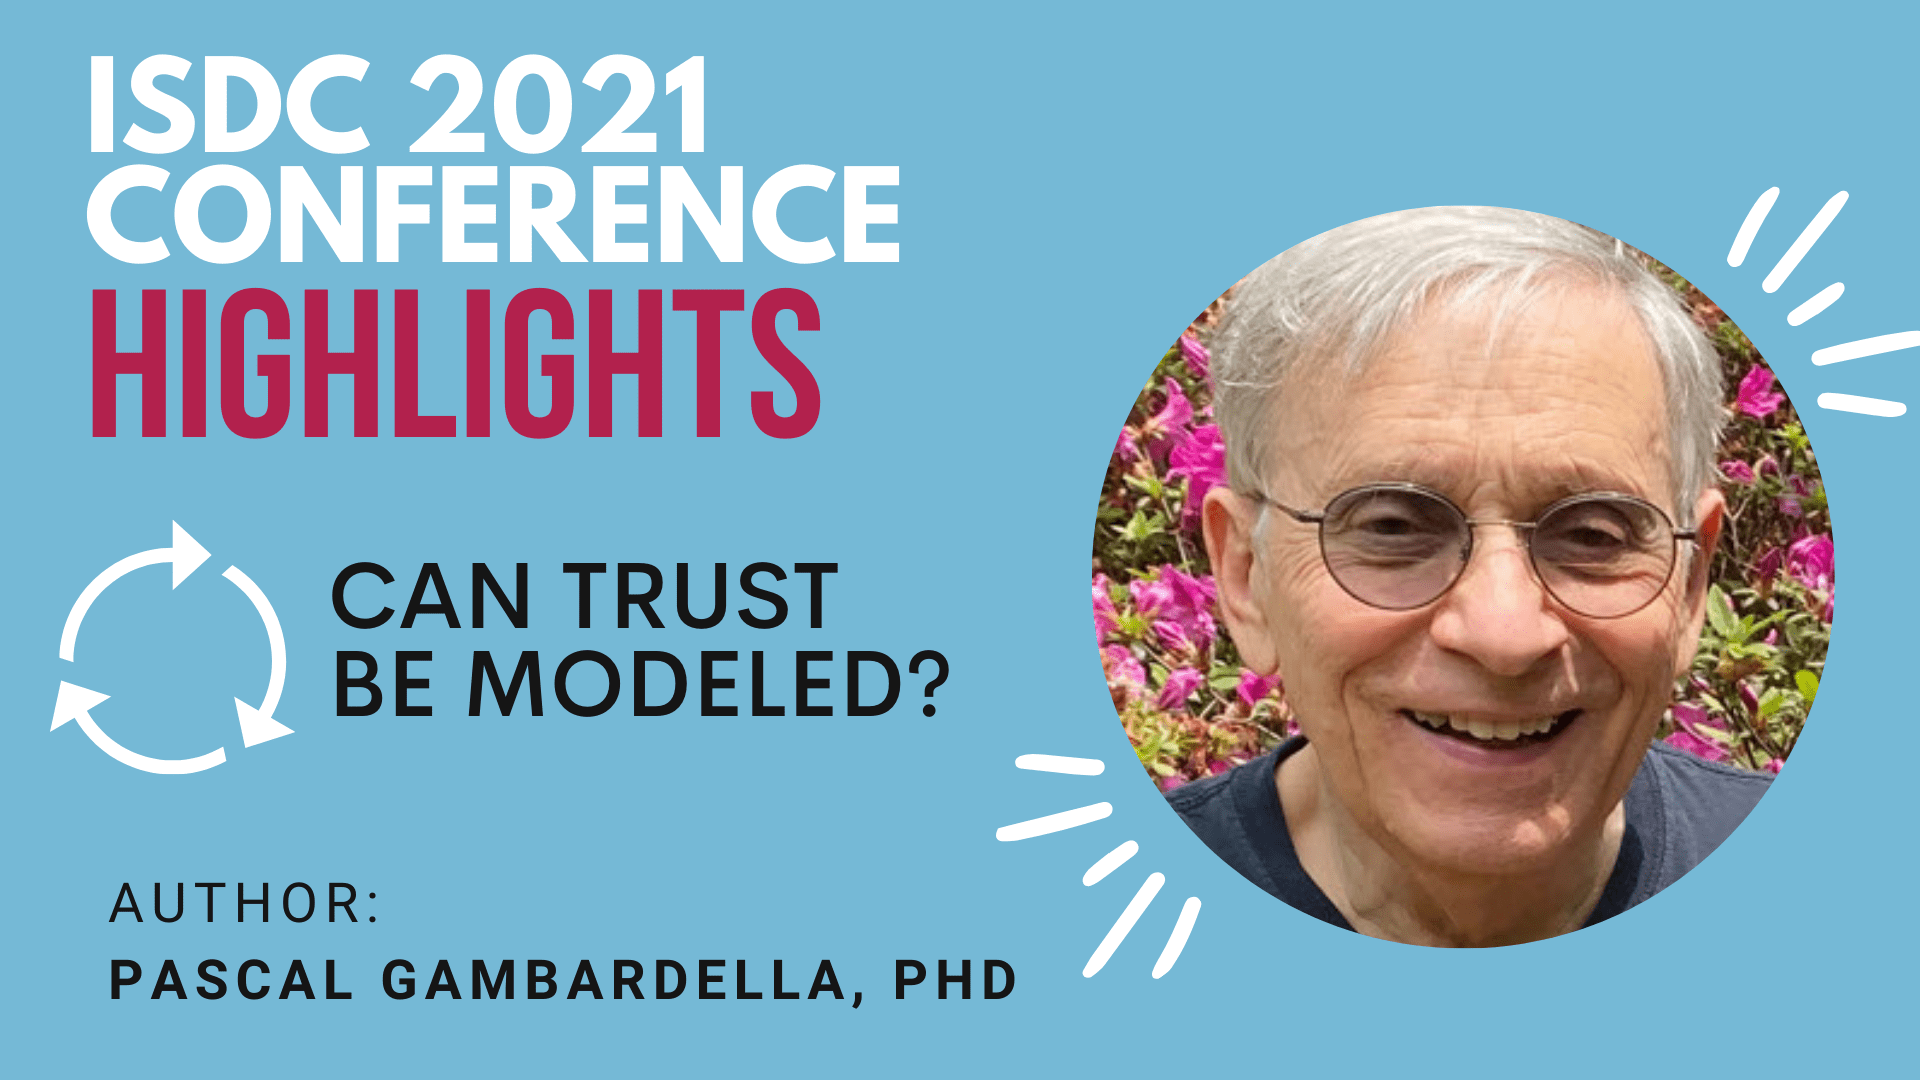 ISDC 2021 Highlights: Can Trust be Modeled?